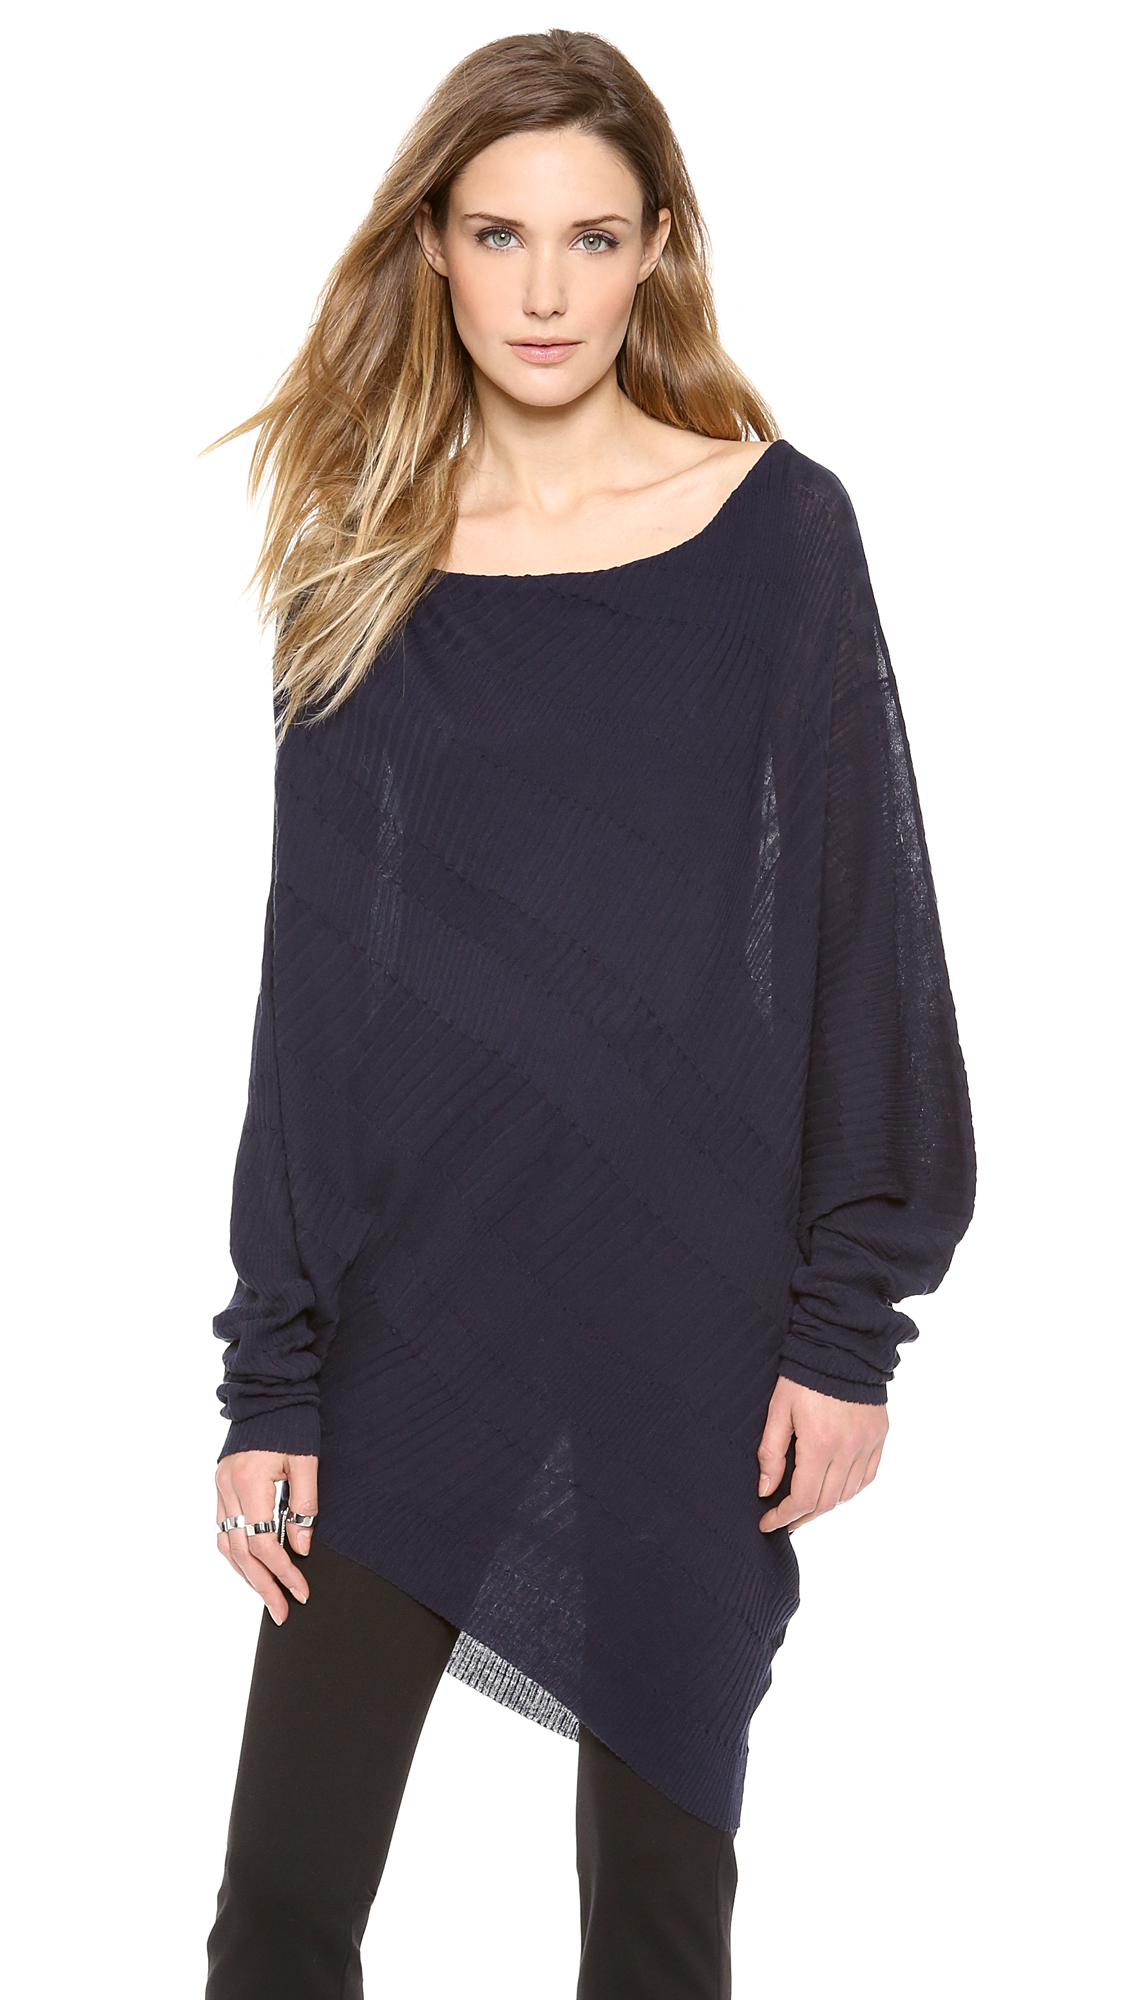 Donna karan new york long sleeve asymmetrical top in blue for Donna karen new york